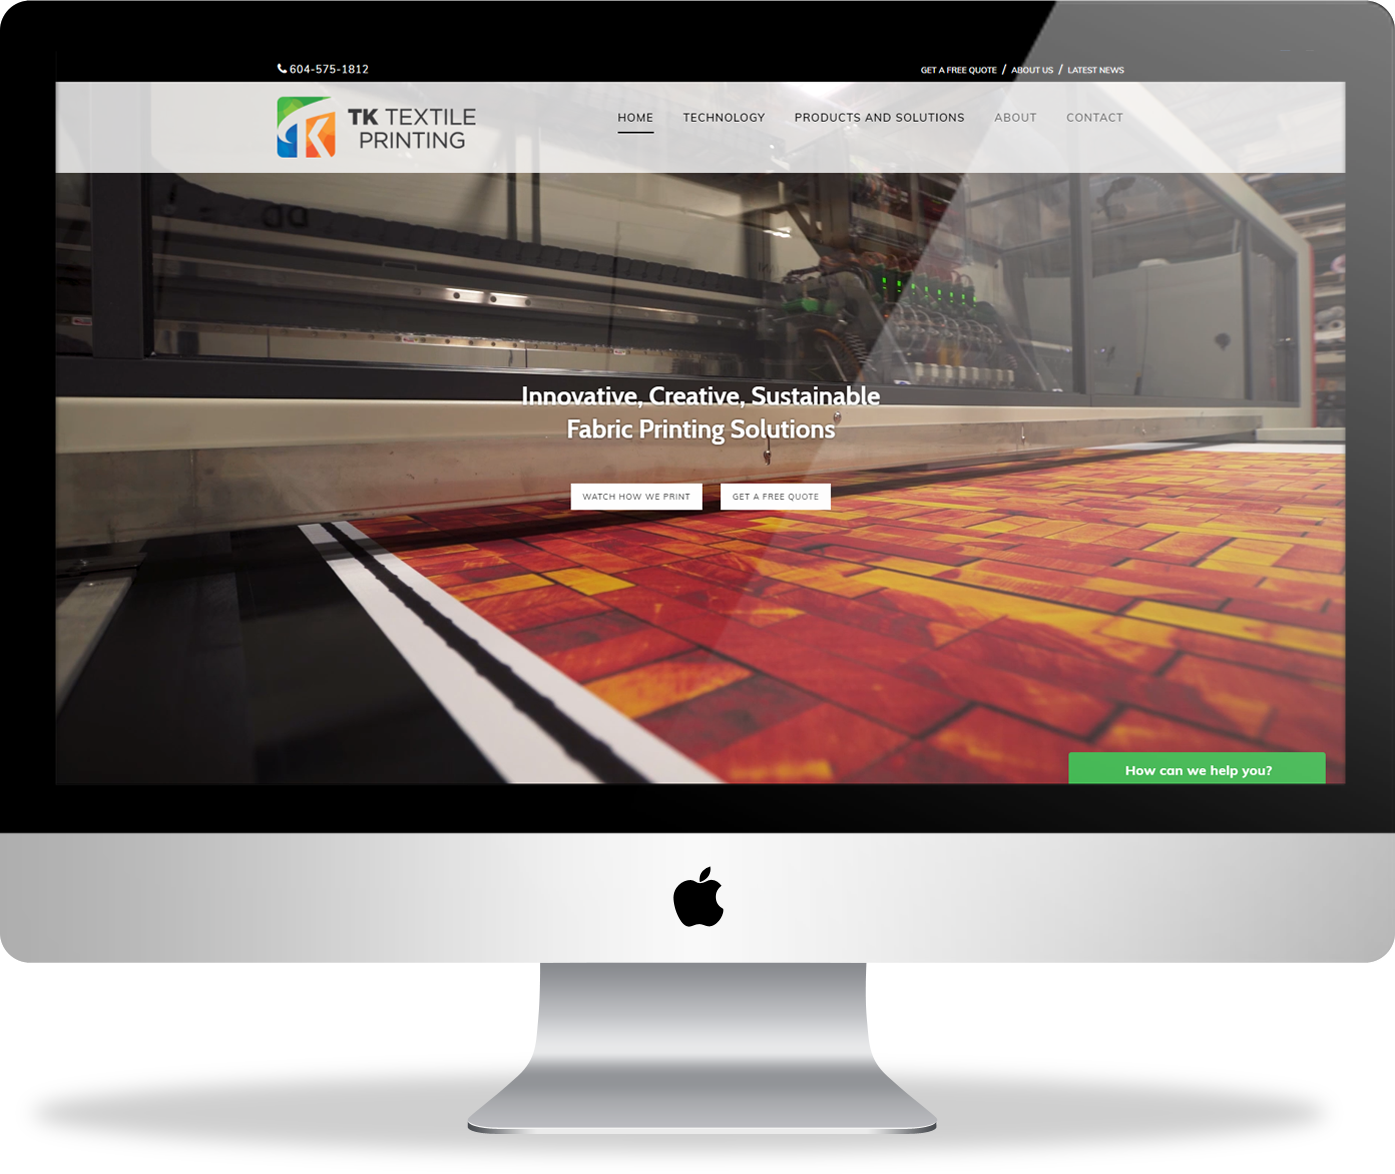 TK Textile Printing website homepage